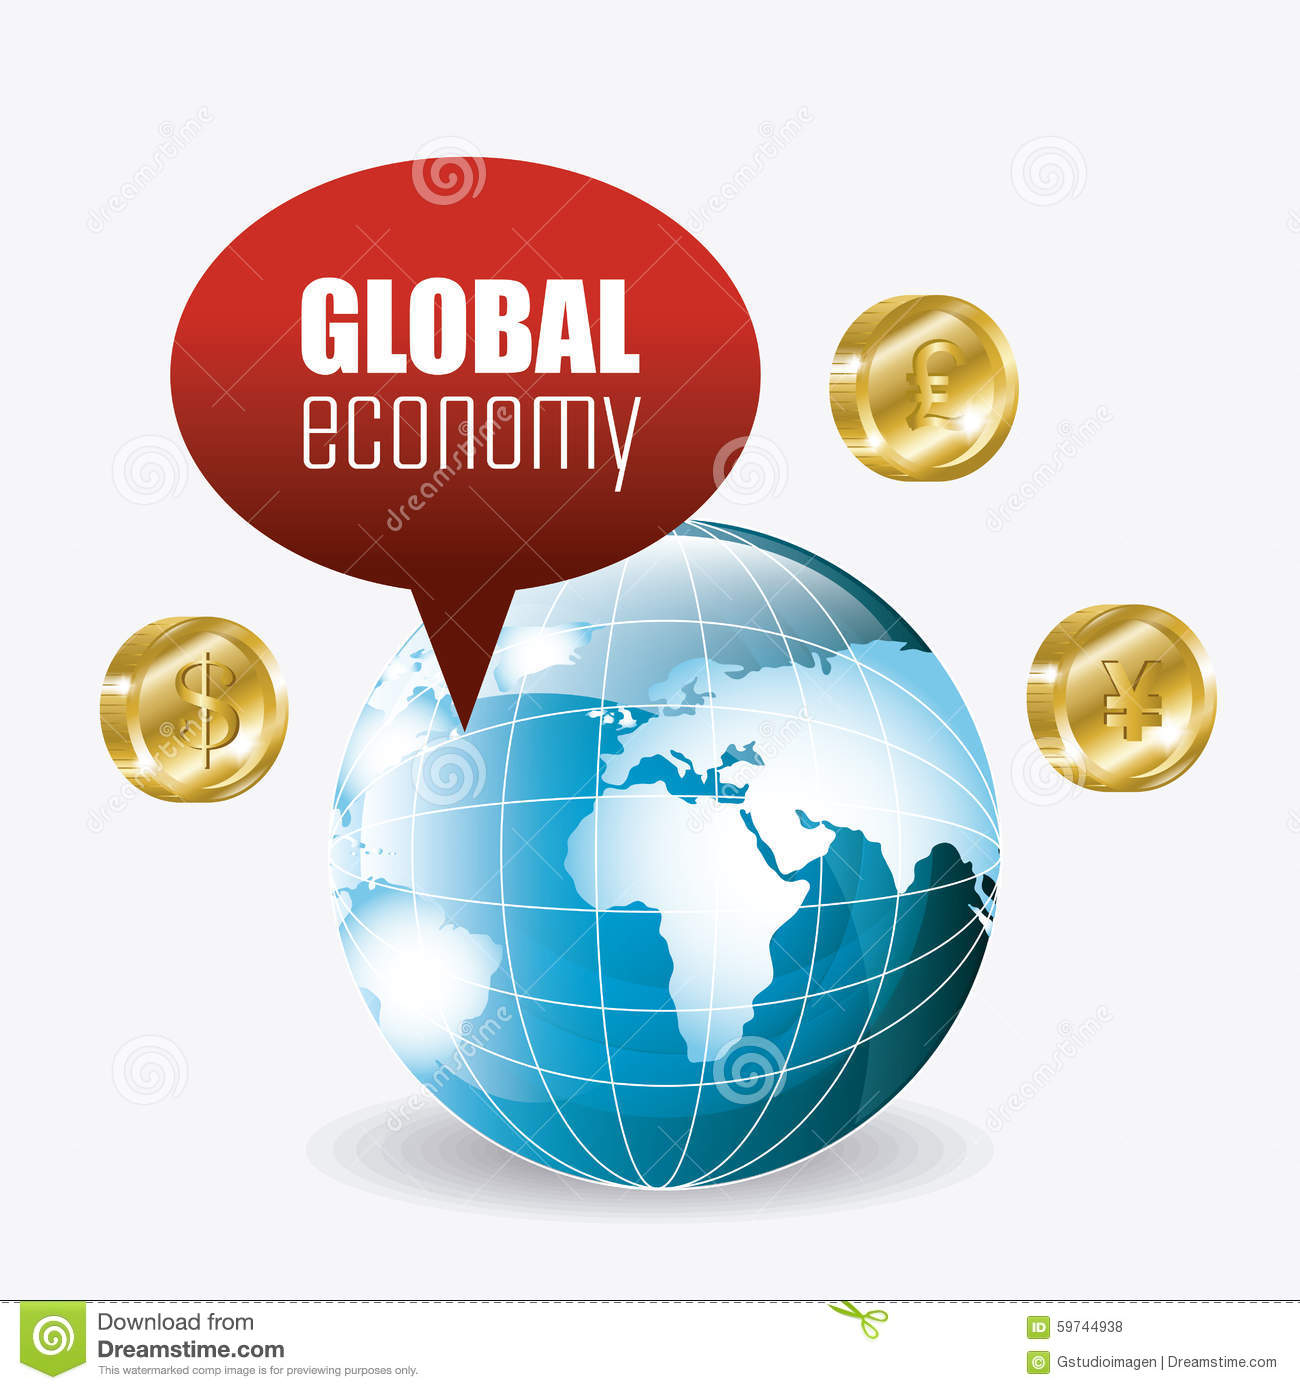 Global economy money and business stock vector image for Global design company